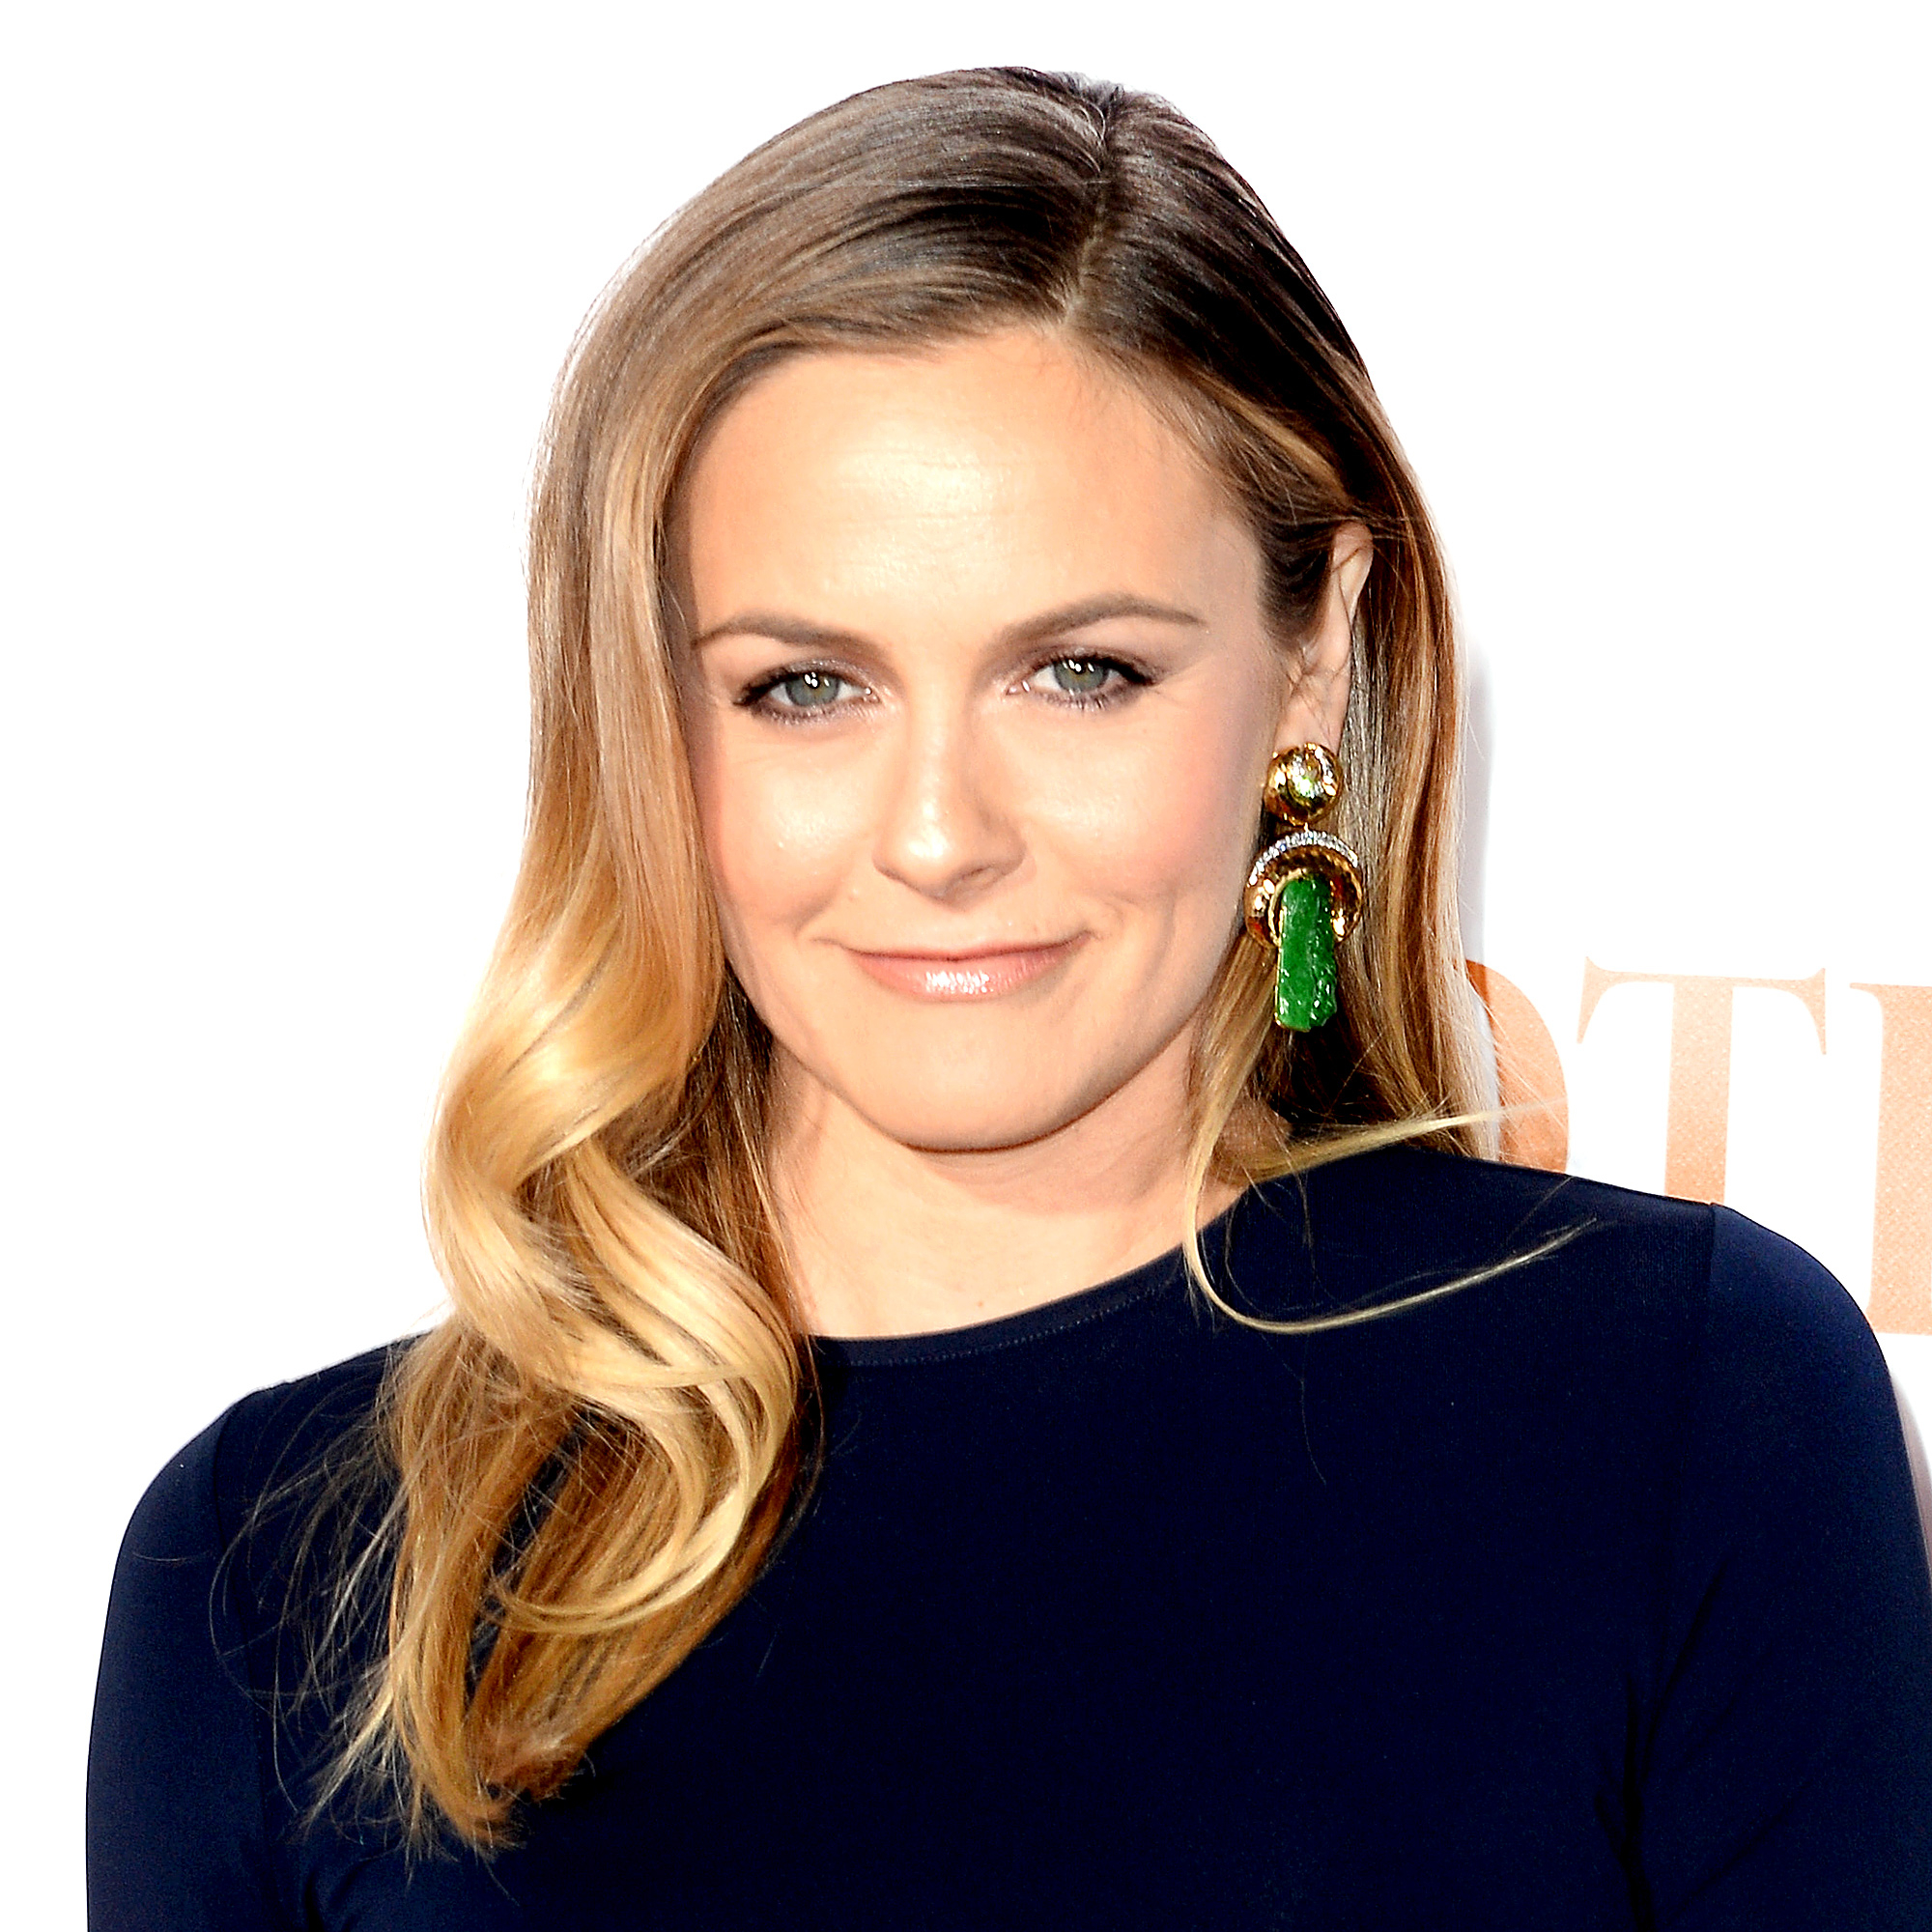 Alicia Silverstone attends the 'Spotlight' New York premiere at Ziegfeld Theater on October 27, 2015 in New York City.